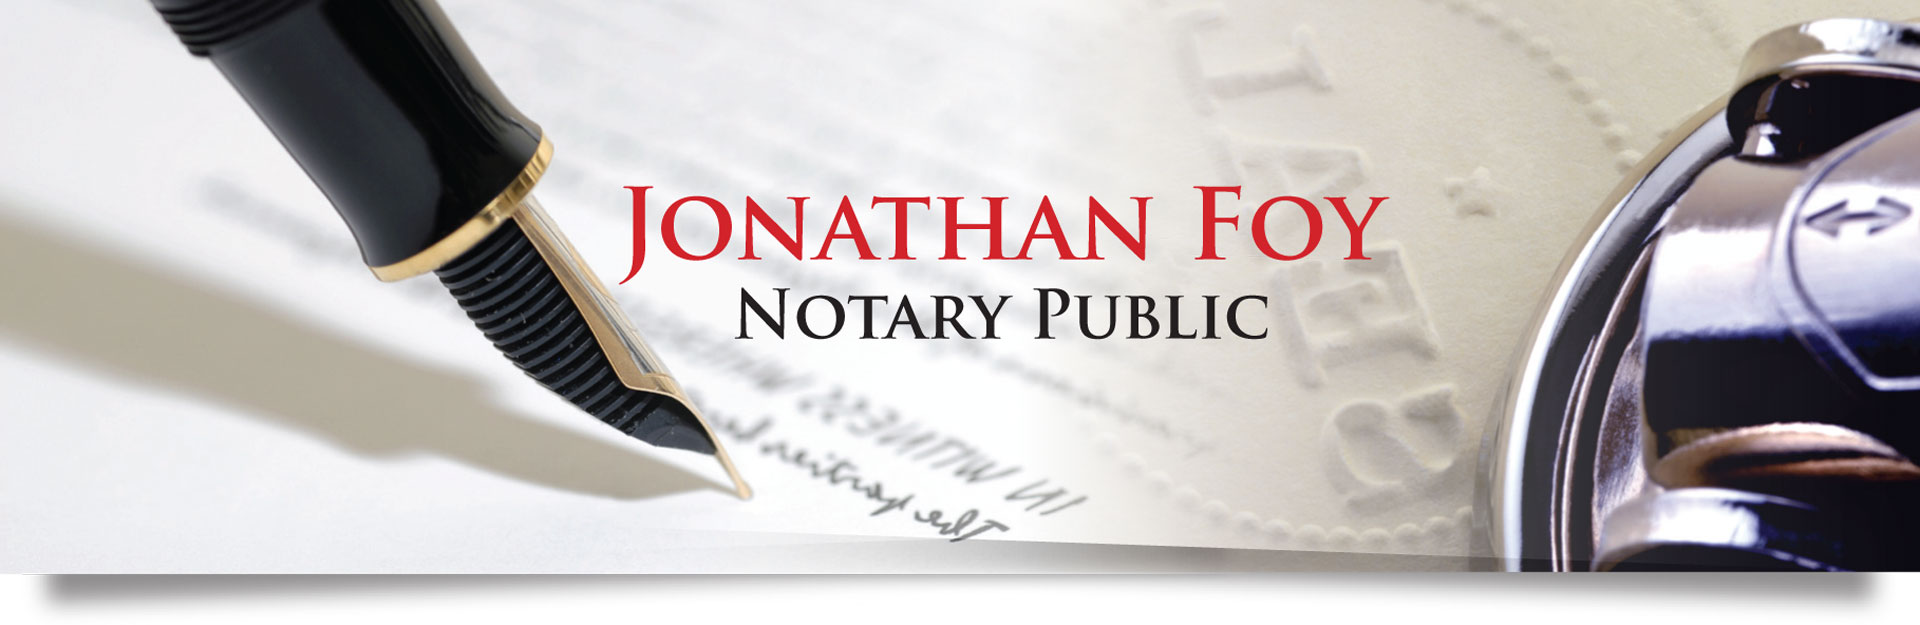 notary public Luton